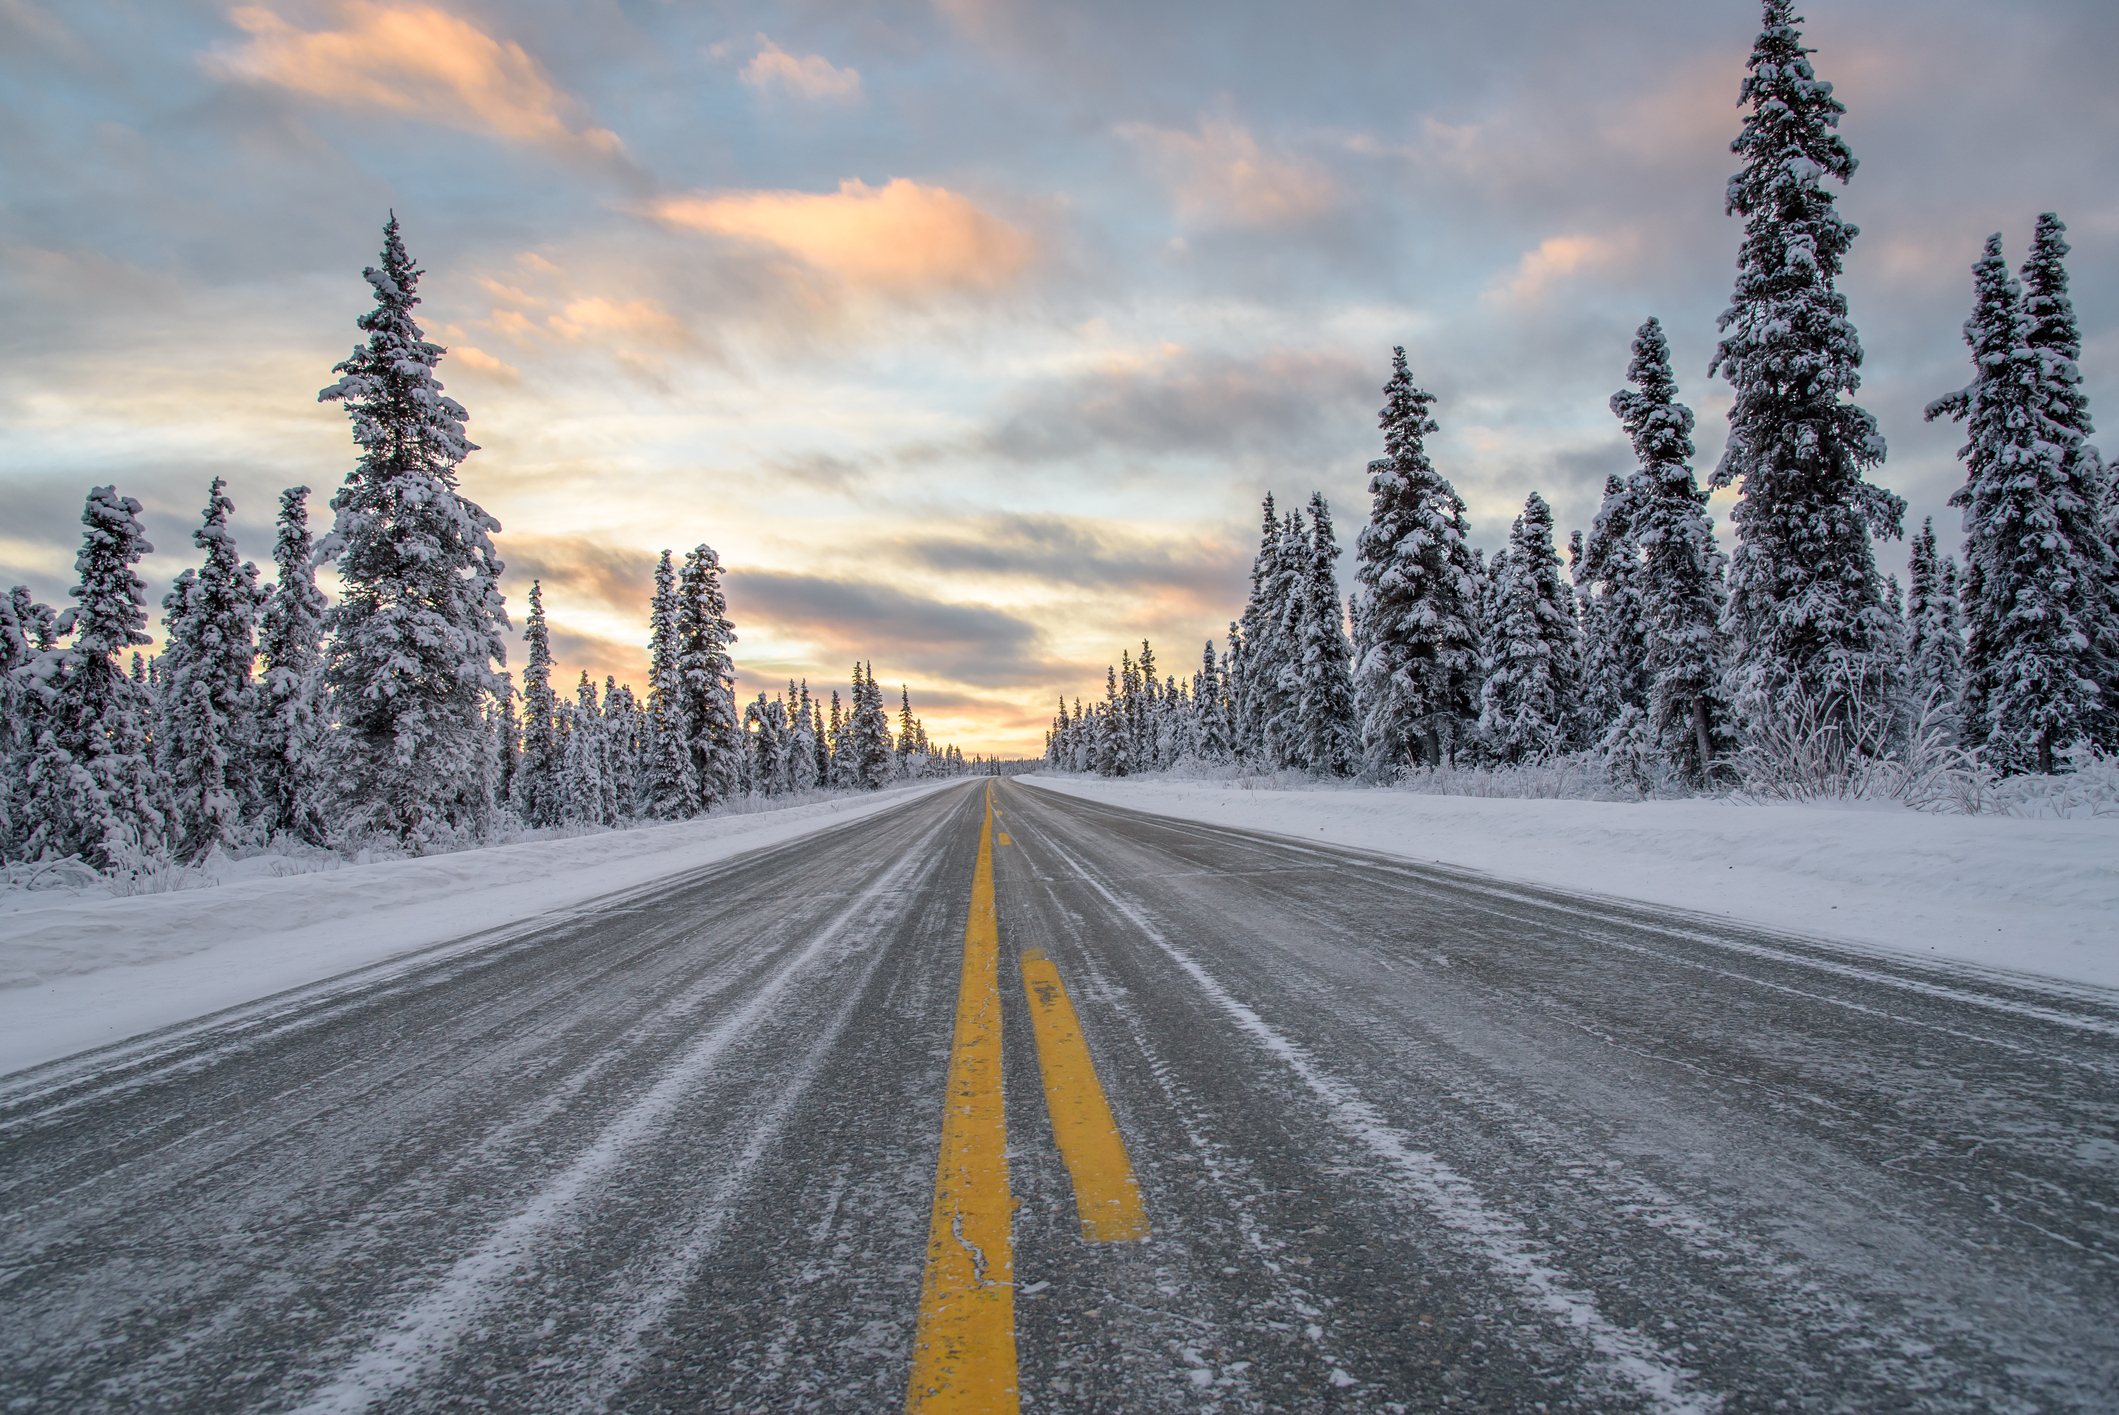 WINTER TIRES - Tires that are designed to perform on cold roads with snow and ice. Constructed from special rubber compounds and unique tread patterns, winter tires bite into the snow and ice while evacuating water and slush to give you traction when you need it most.